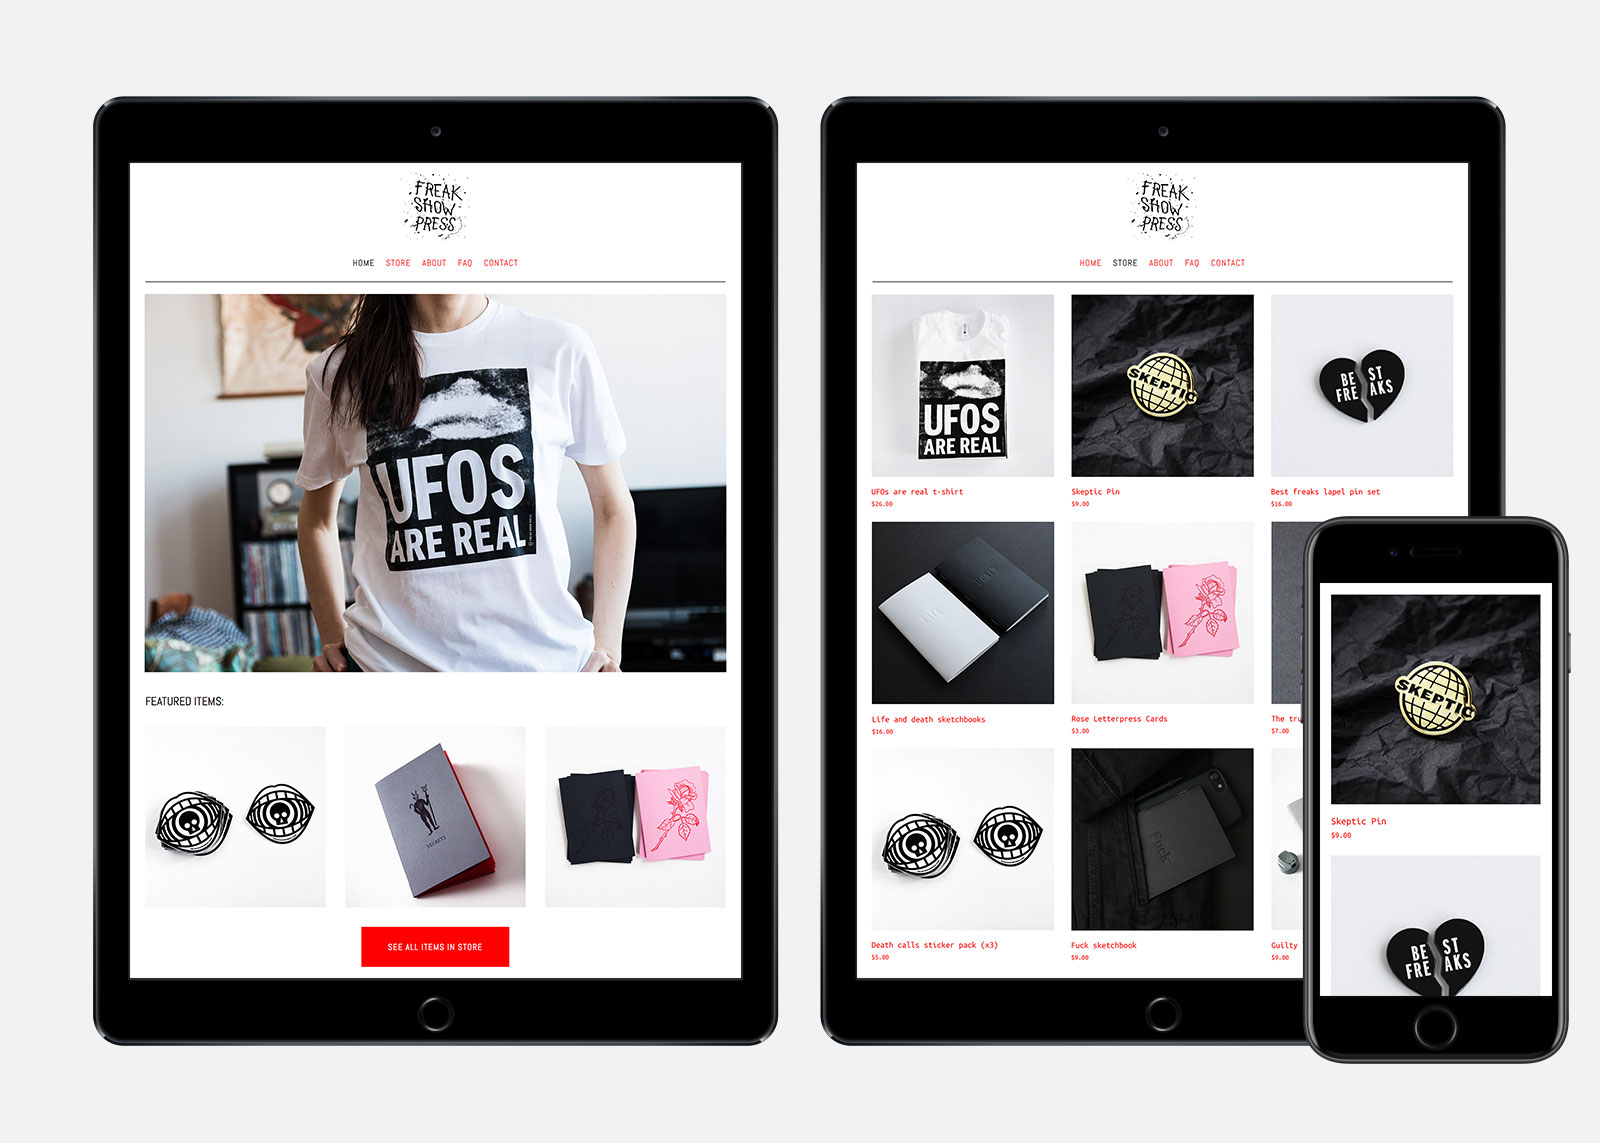 Apparel e-commerce website design and layout